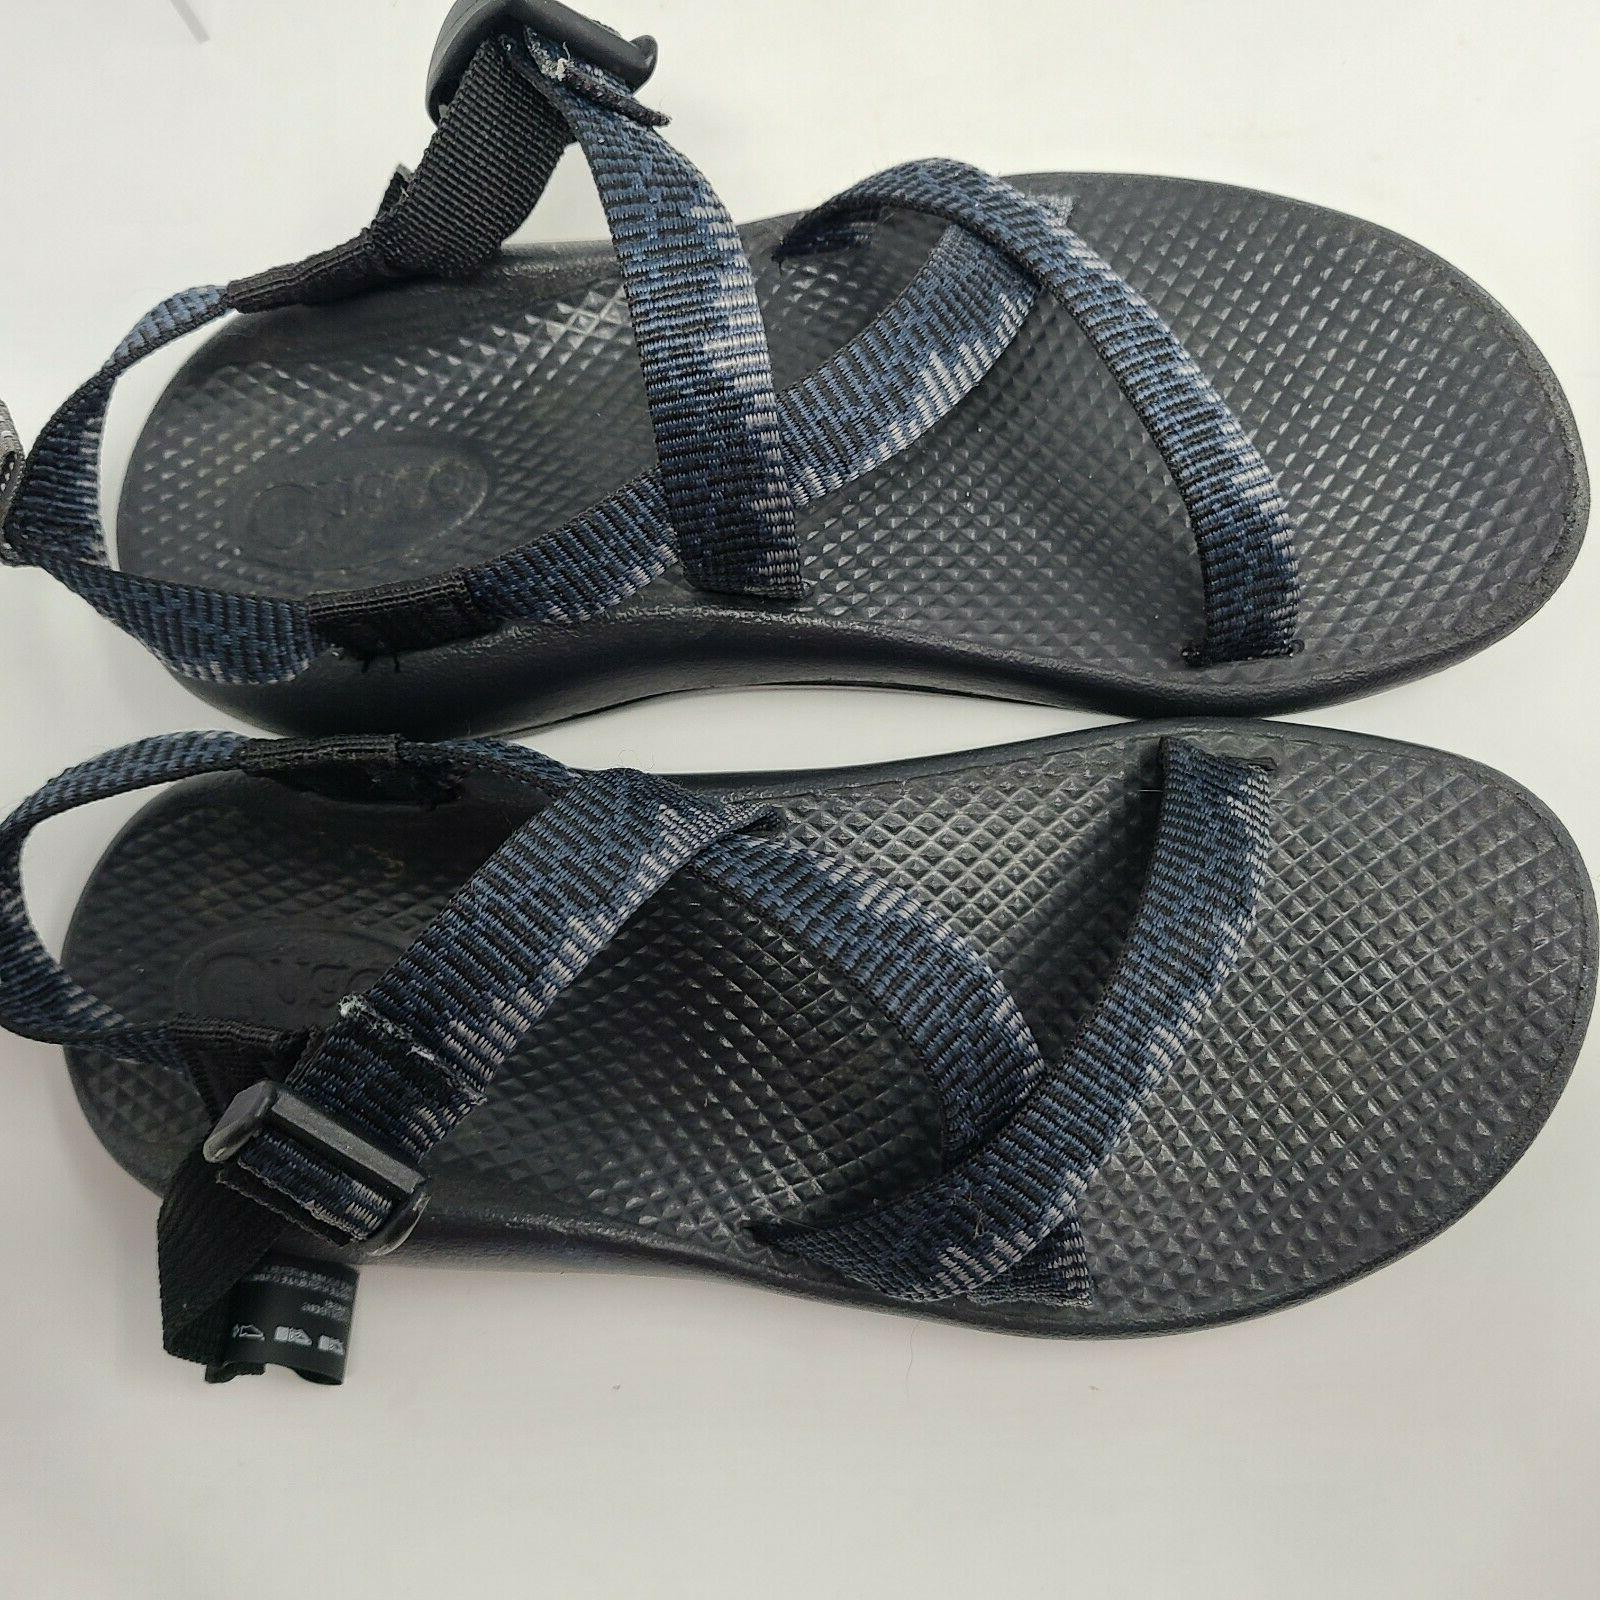 Chaco Z Hiking Sandals Sport Shoes